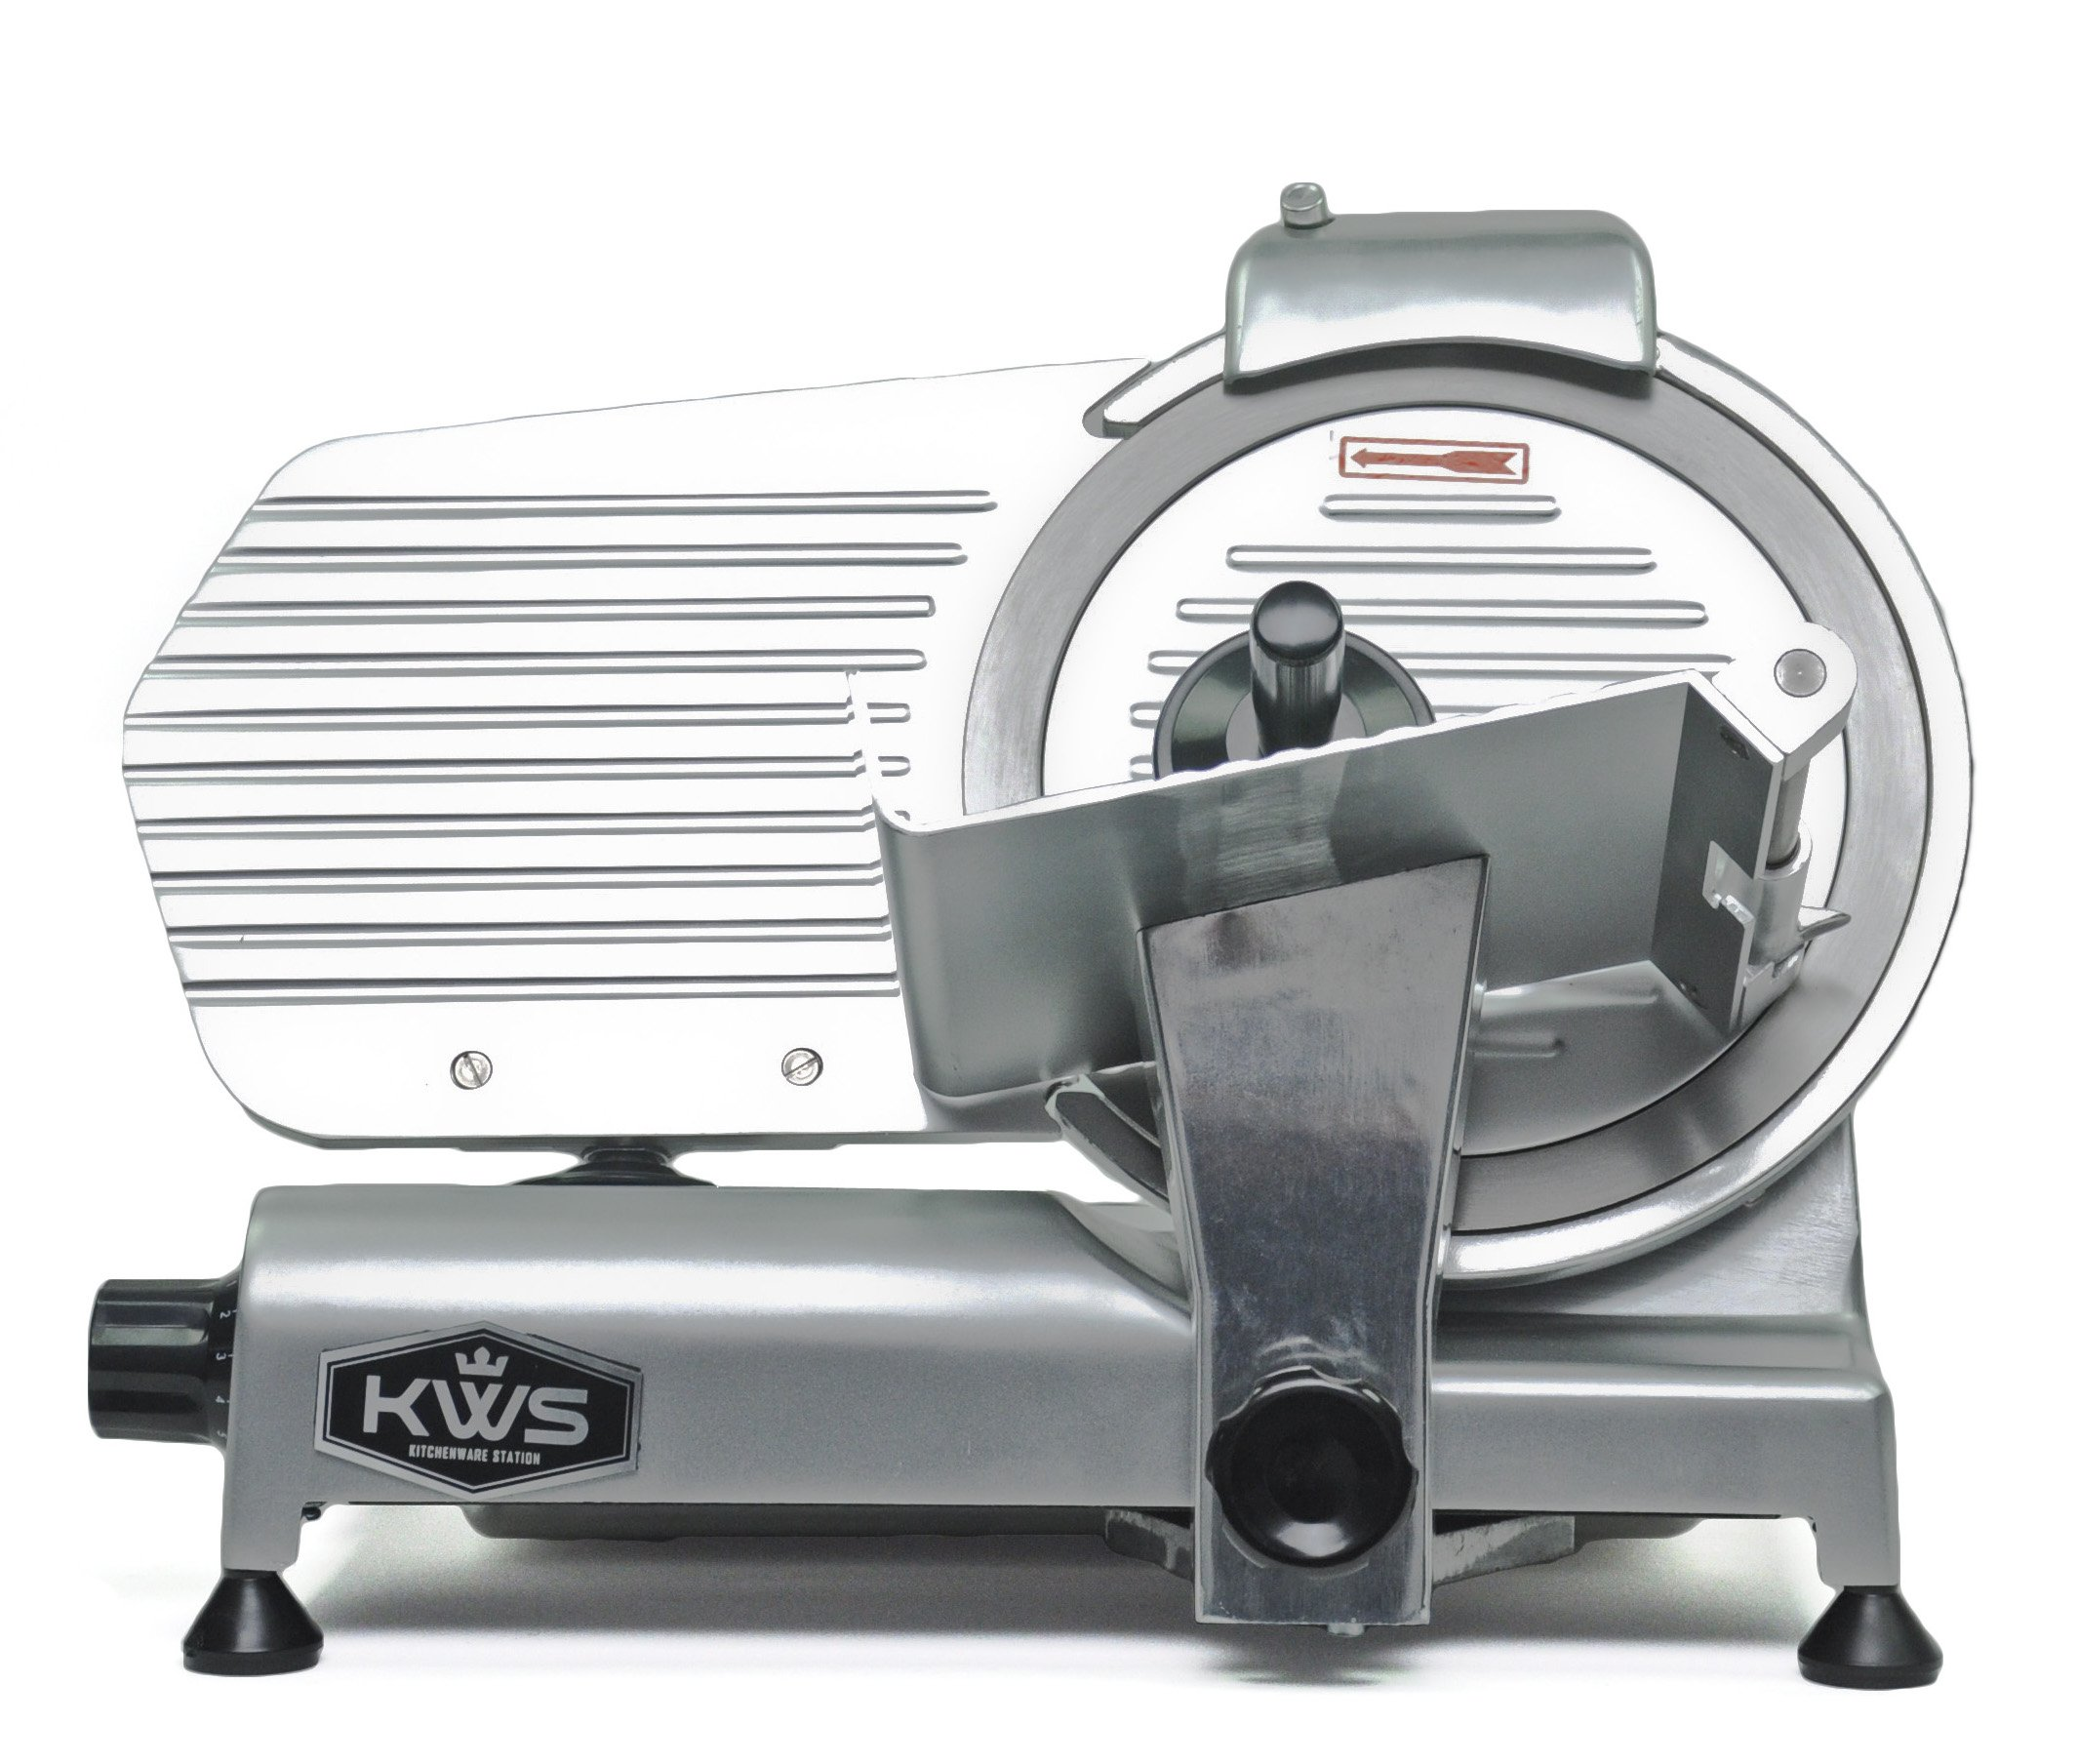 KWS MS-10NS Premium Commercial 320w Electric Meat Slicer 10-Inch Stainless Steel Blade, Deli Meat Frozen Meat Cheese Food Slicer Low Noises Commercial and Home Use by KitchenWare Station